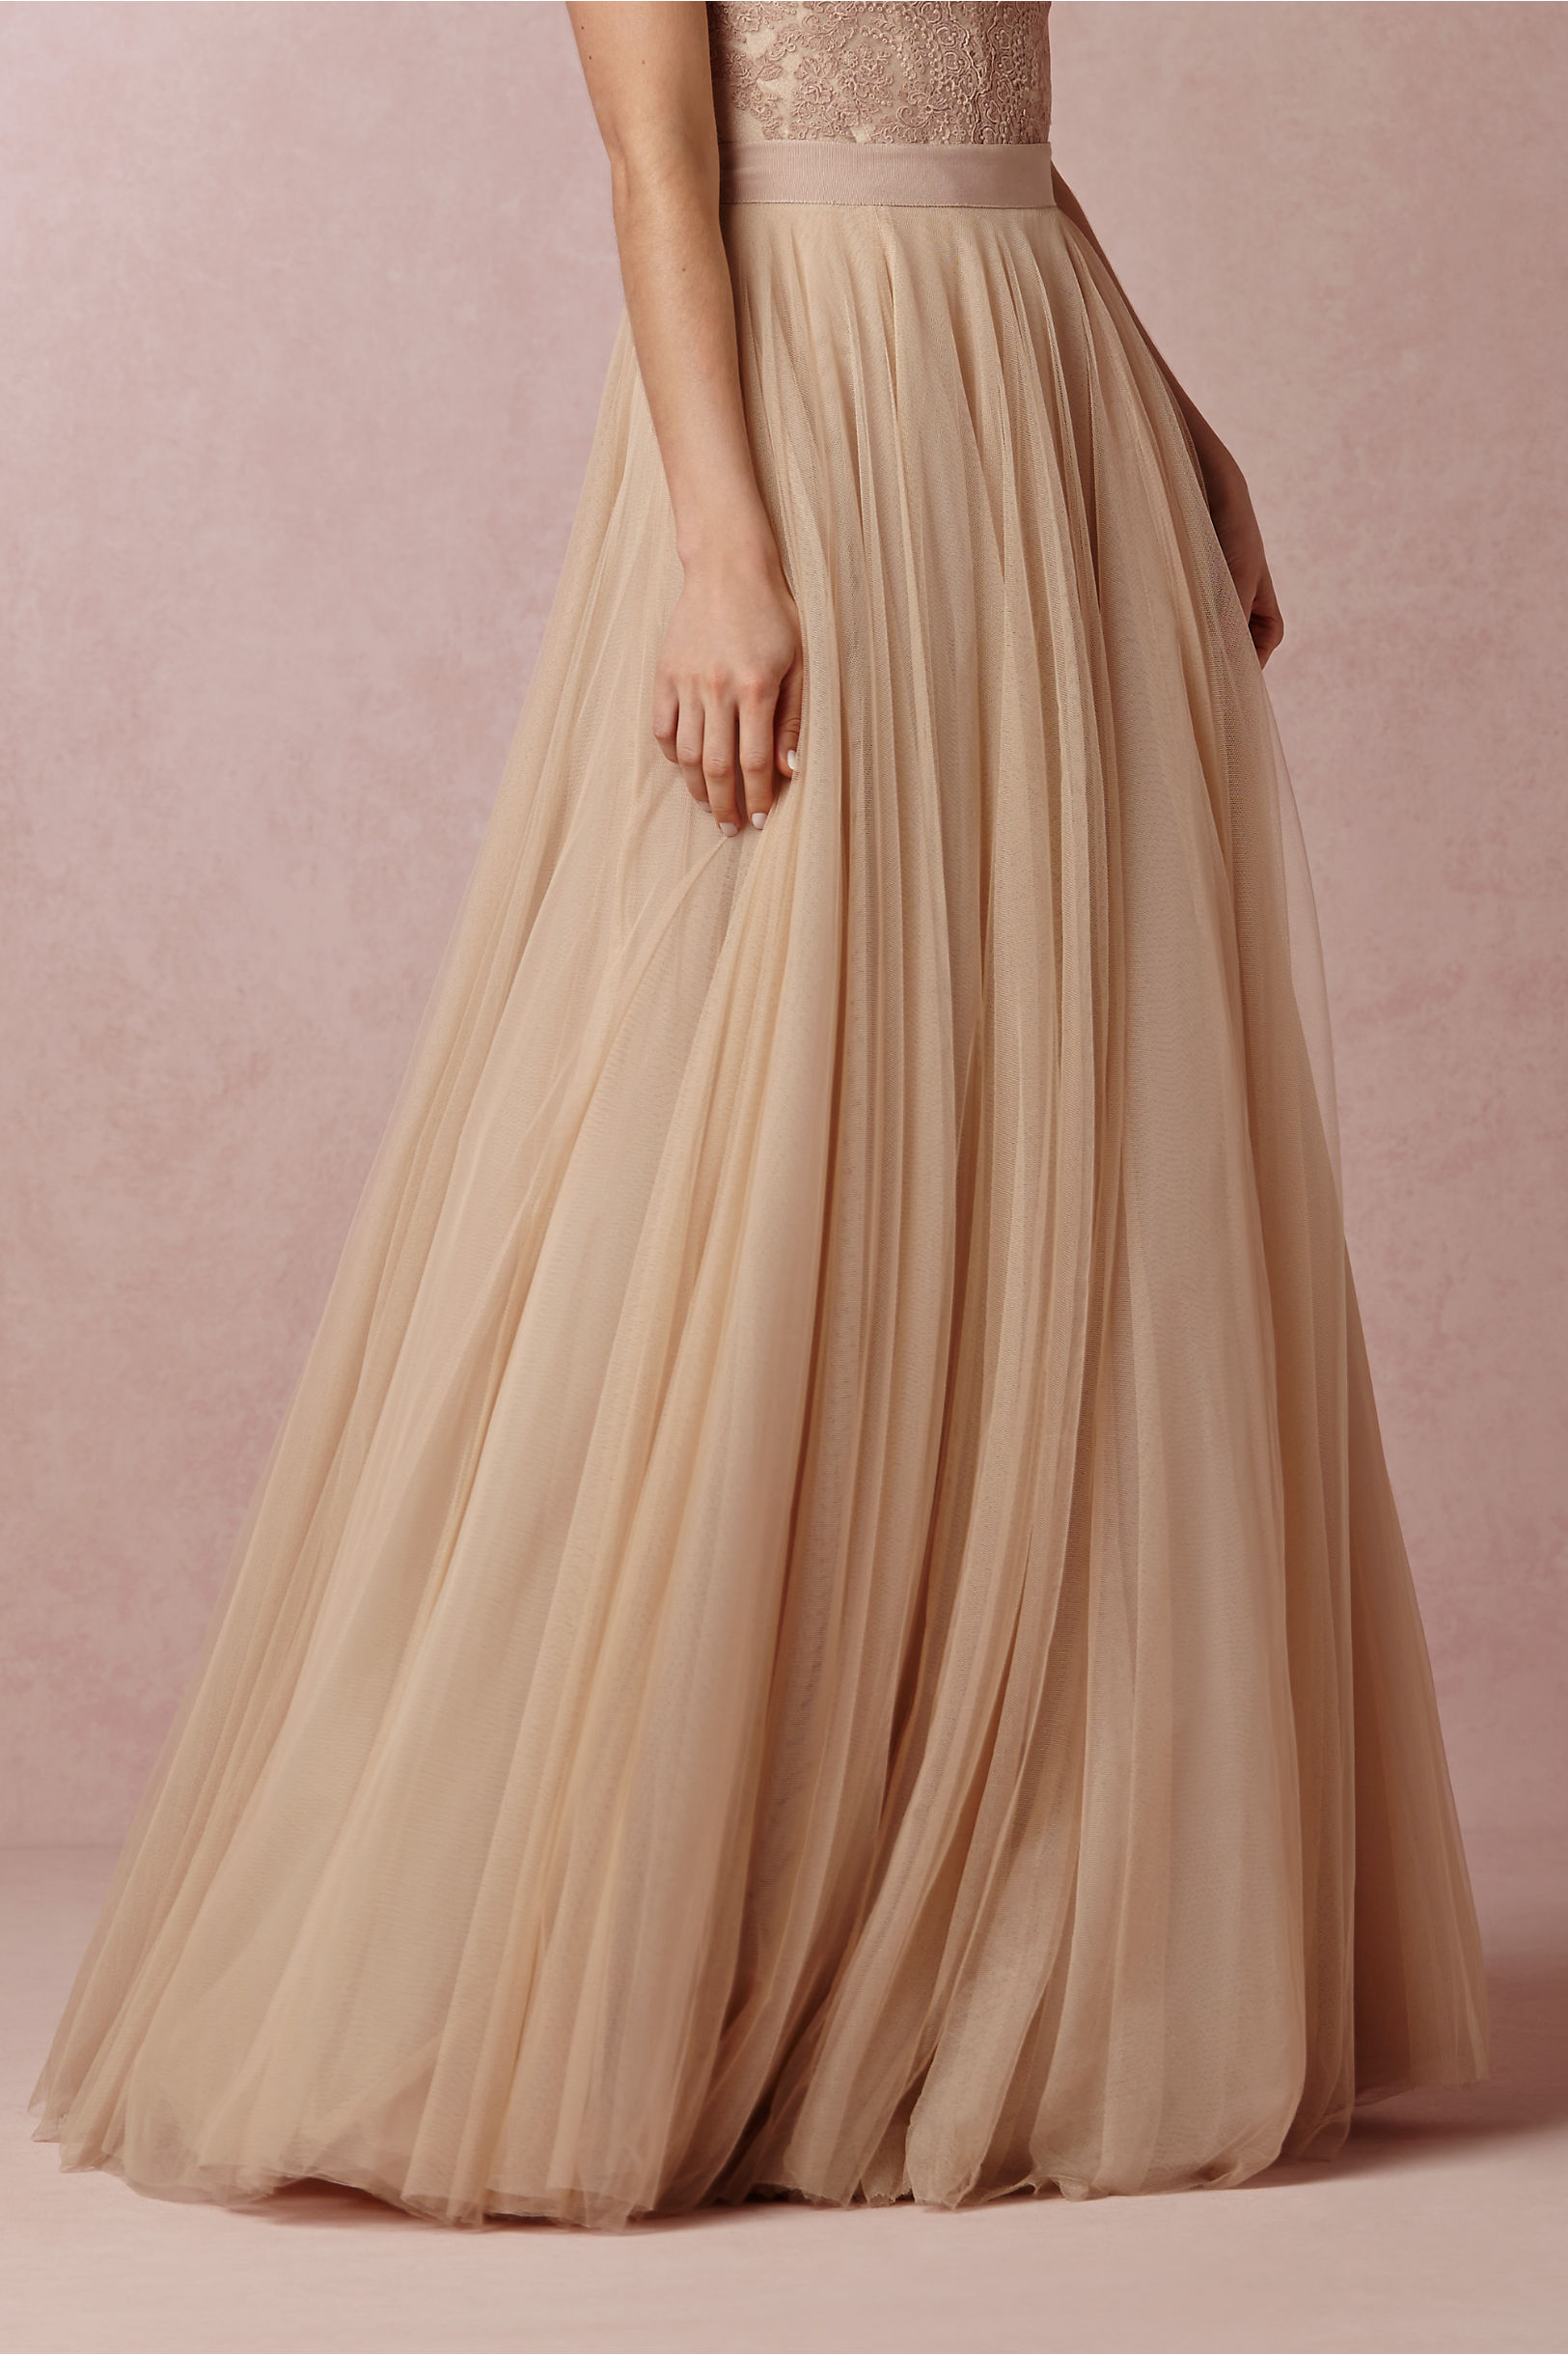 Ahsan Skirt in New & Noteworthy | BHLDN